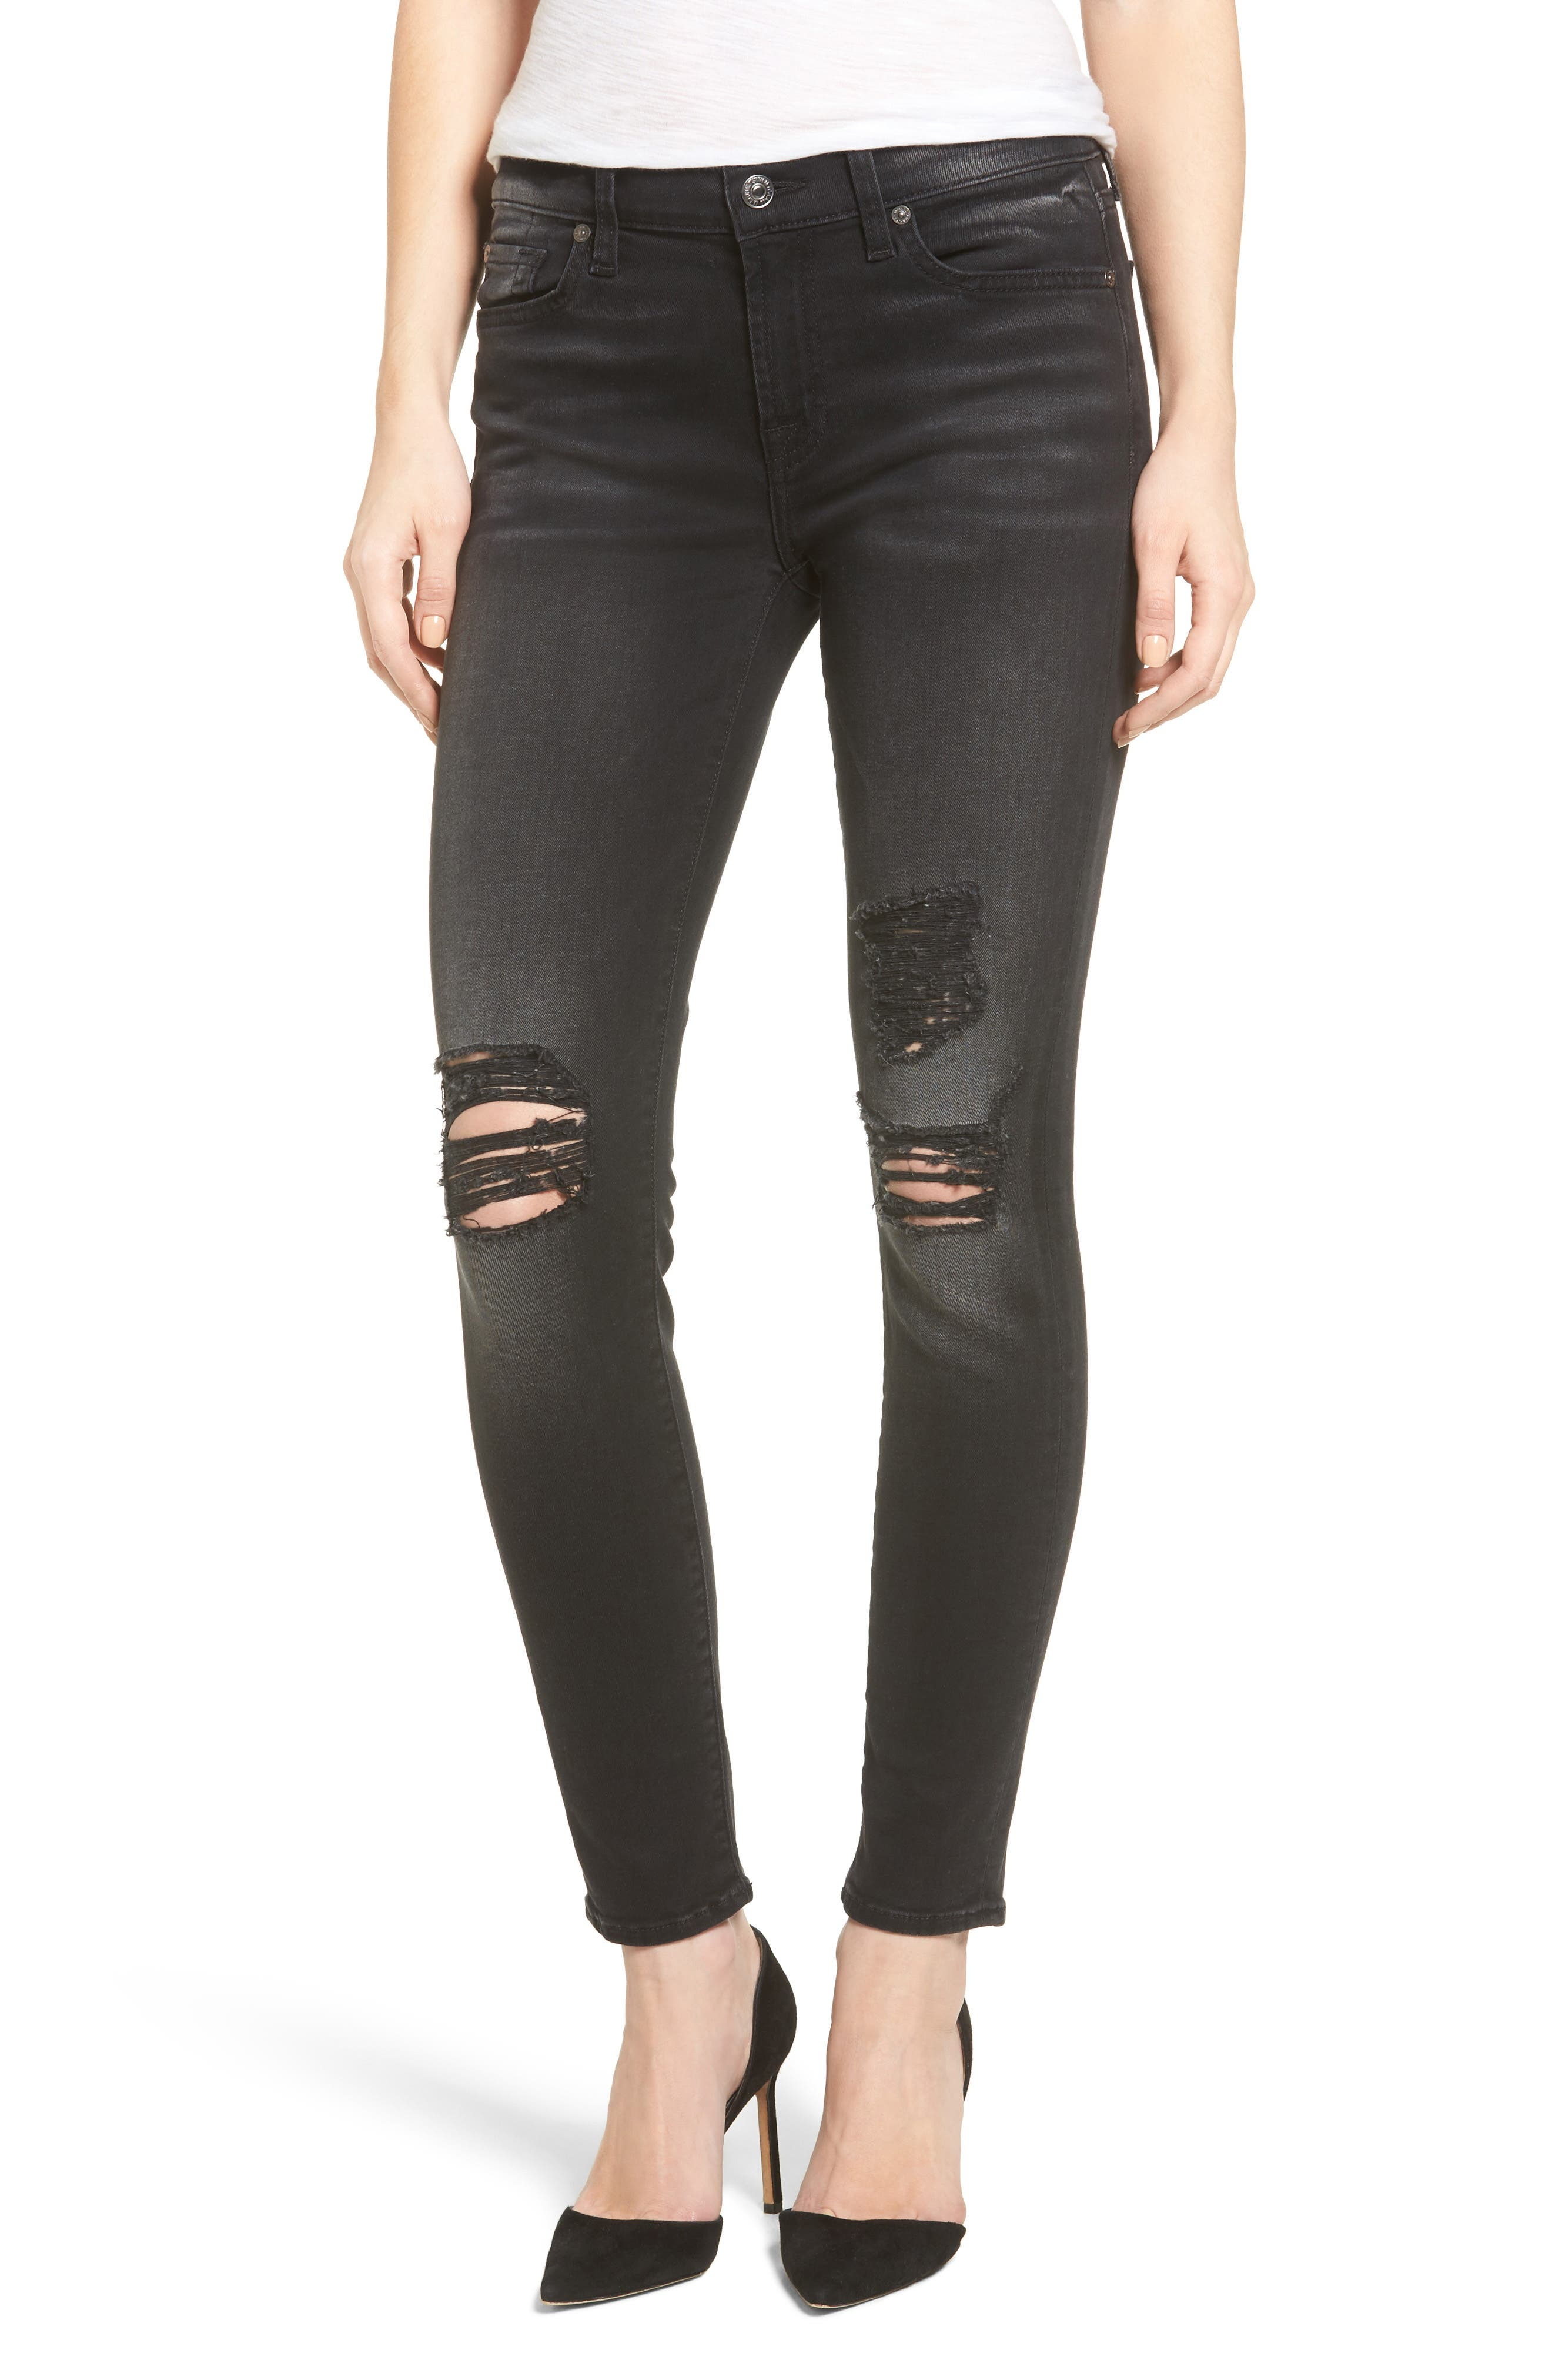 Seven7 The Ankle Skinny Jeans,                             Main thumbnail 1, color,                             004